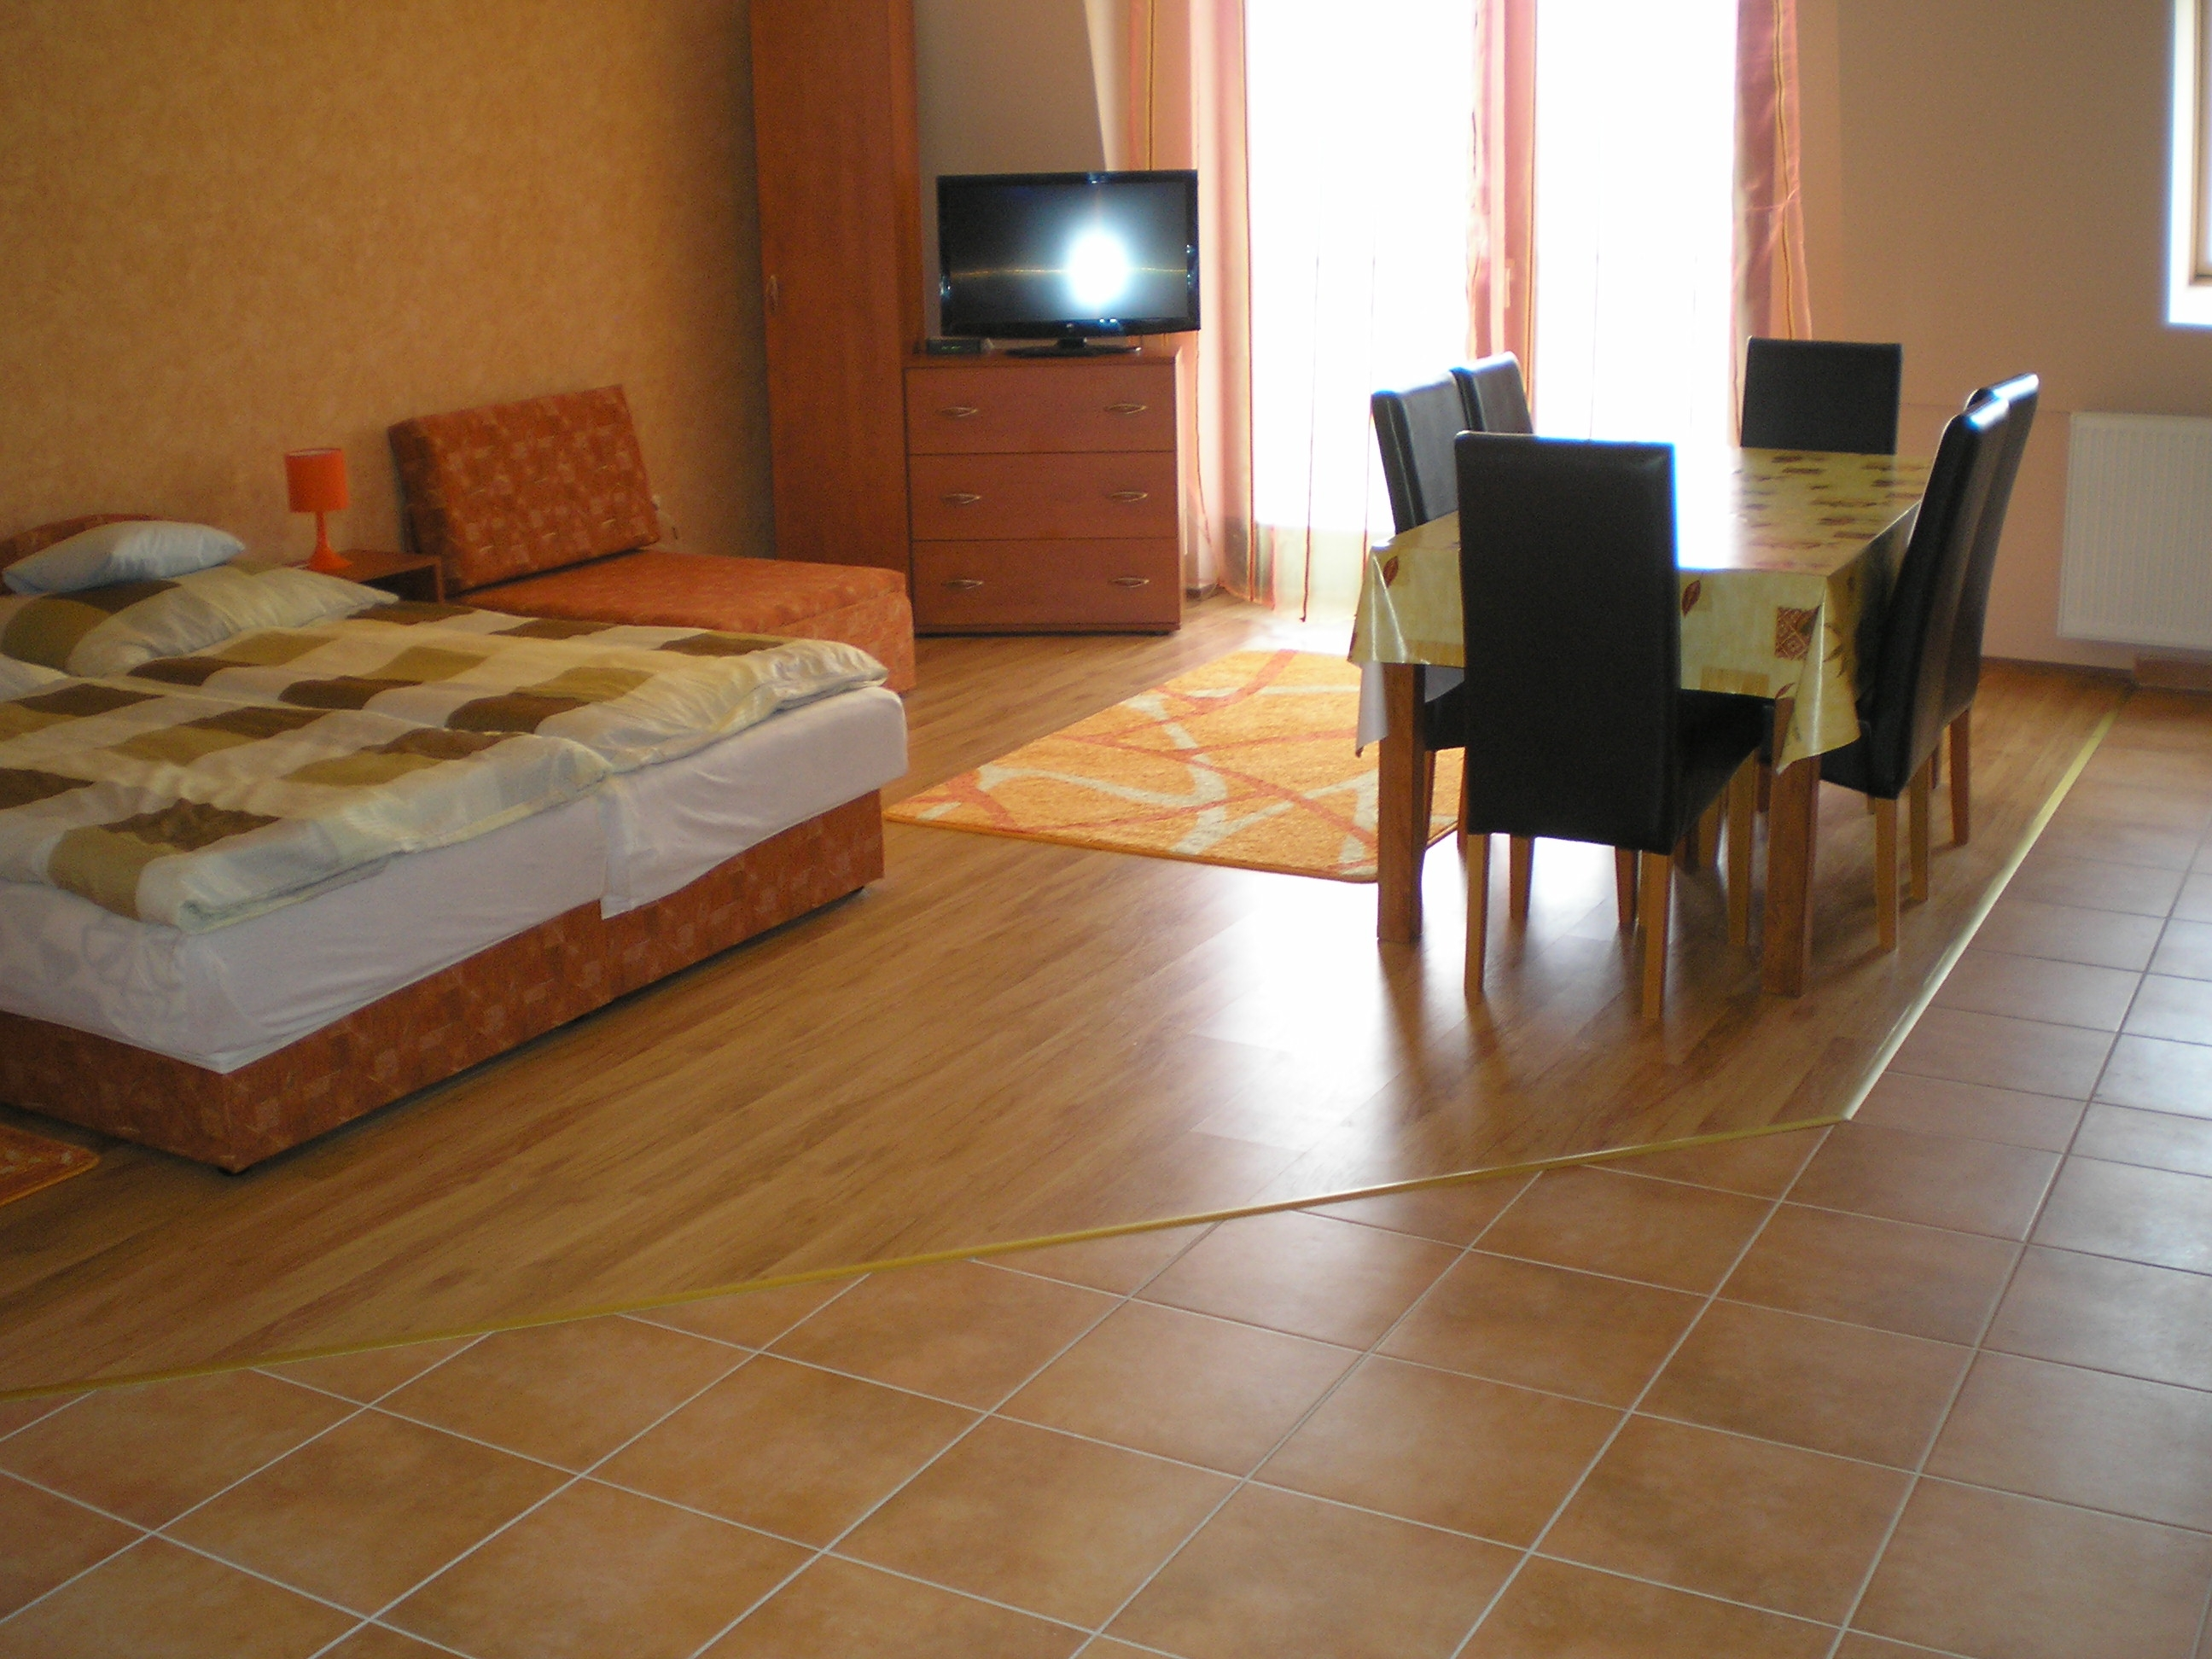 Economy family 4 fs apartman 2 hltrrel - Nappali